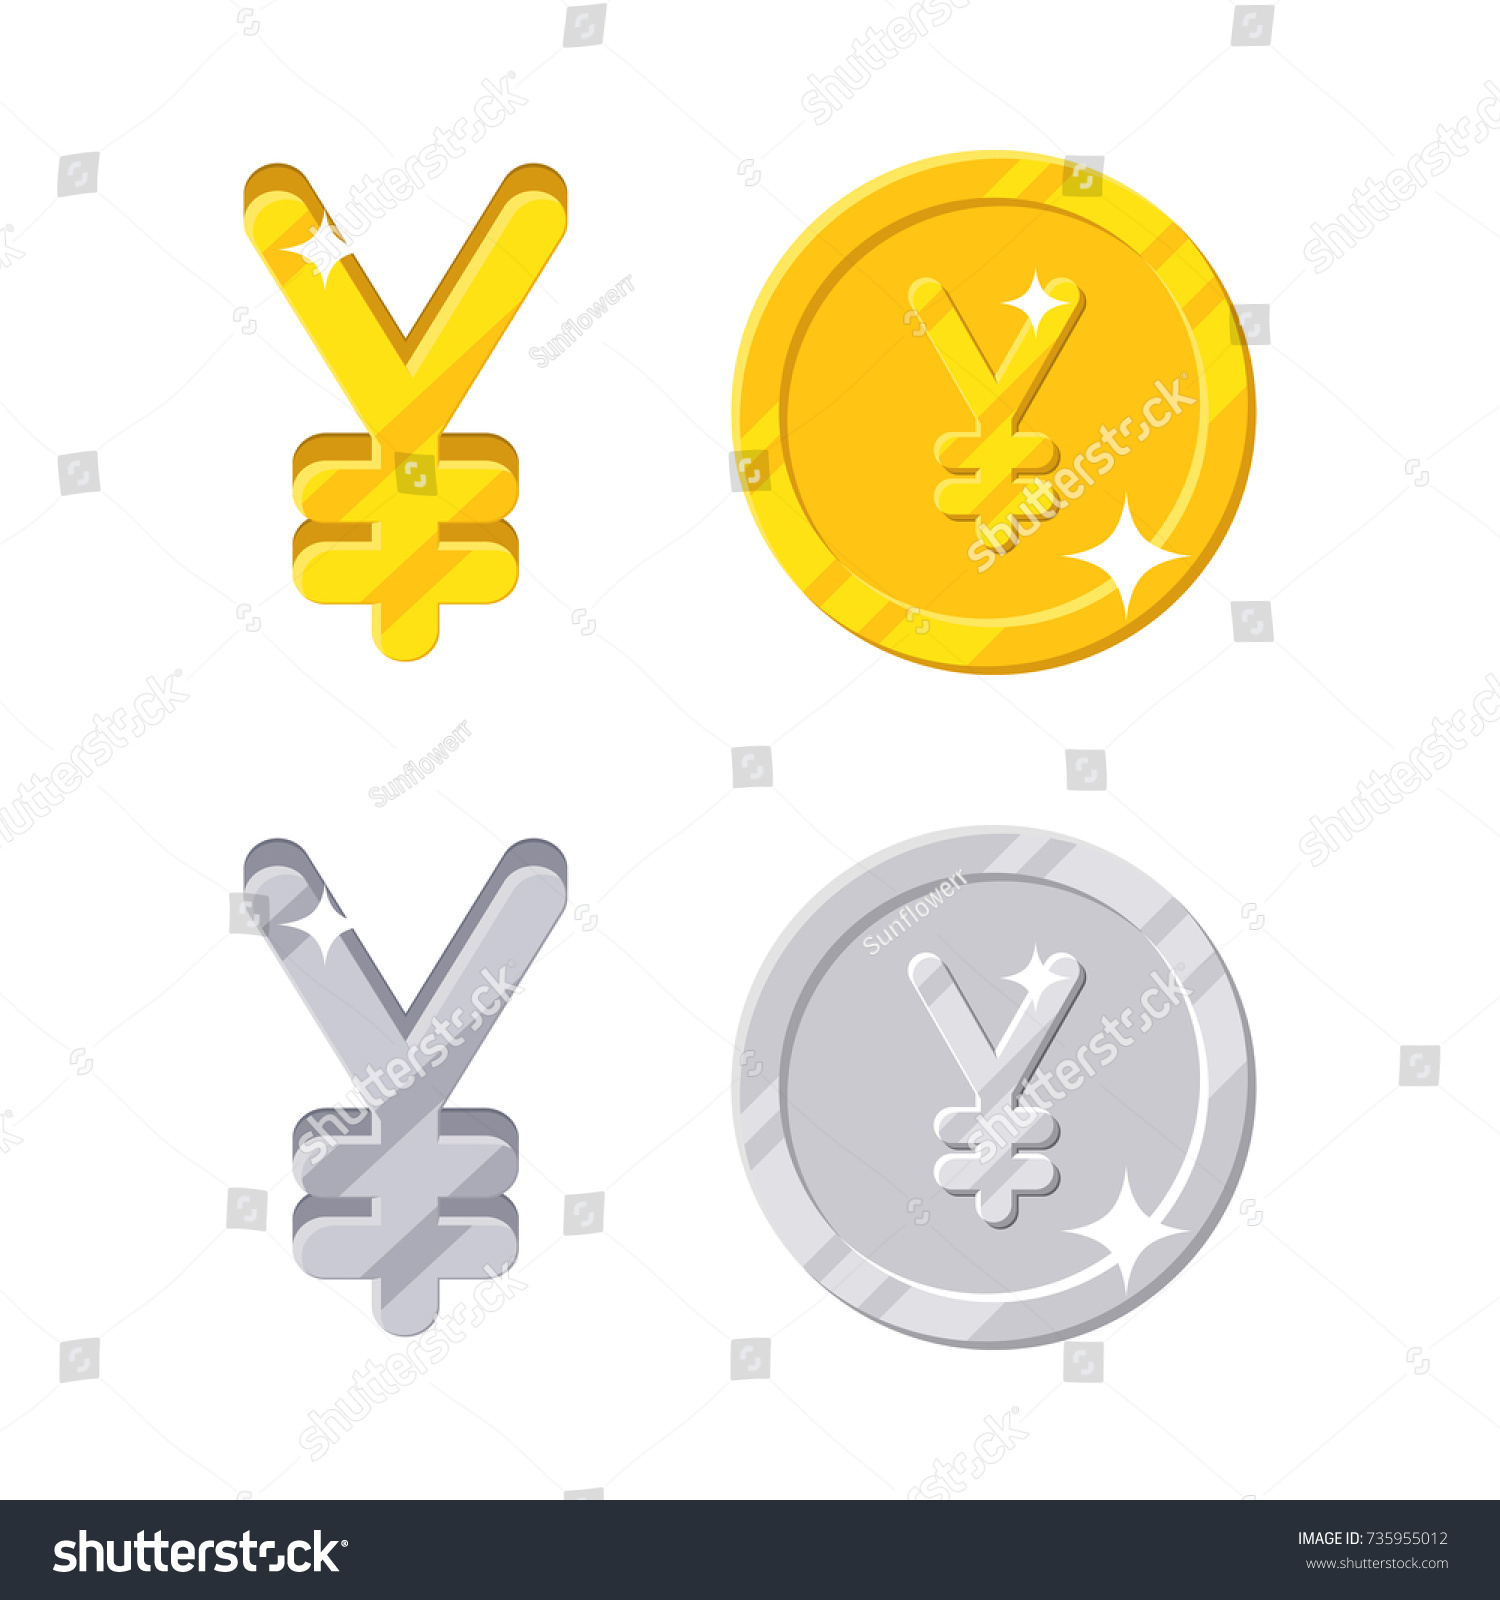 Yen yuan sign gold silver symbol stock vector 735955012 shutterstock gold and silver symbol of japan or china currency and coins biocorpaavc Choice Image